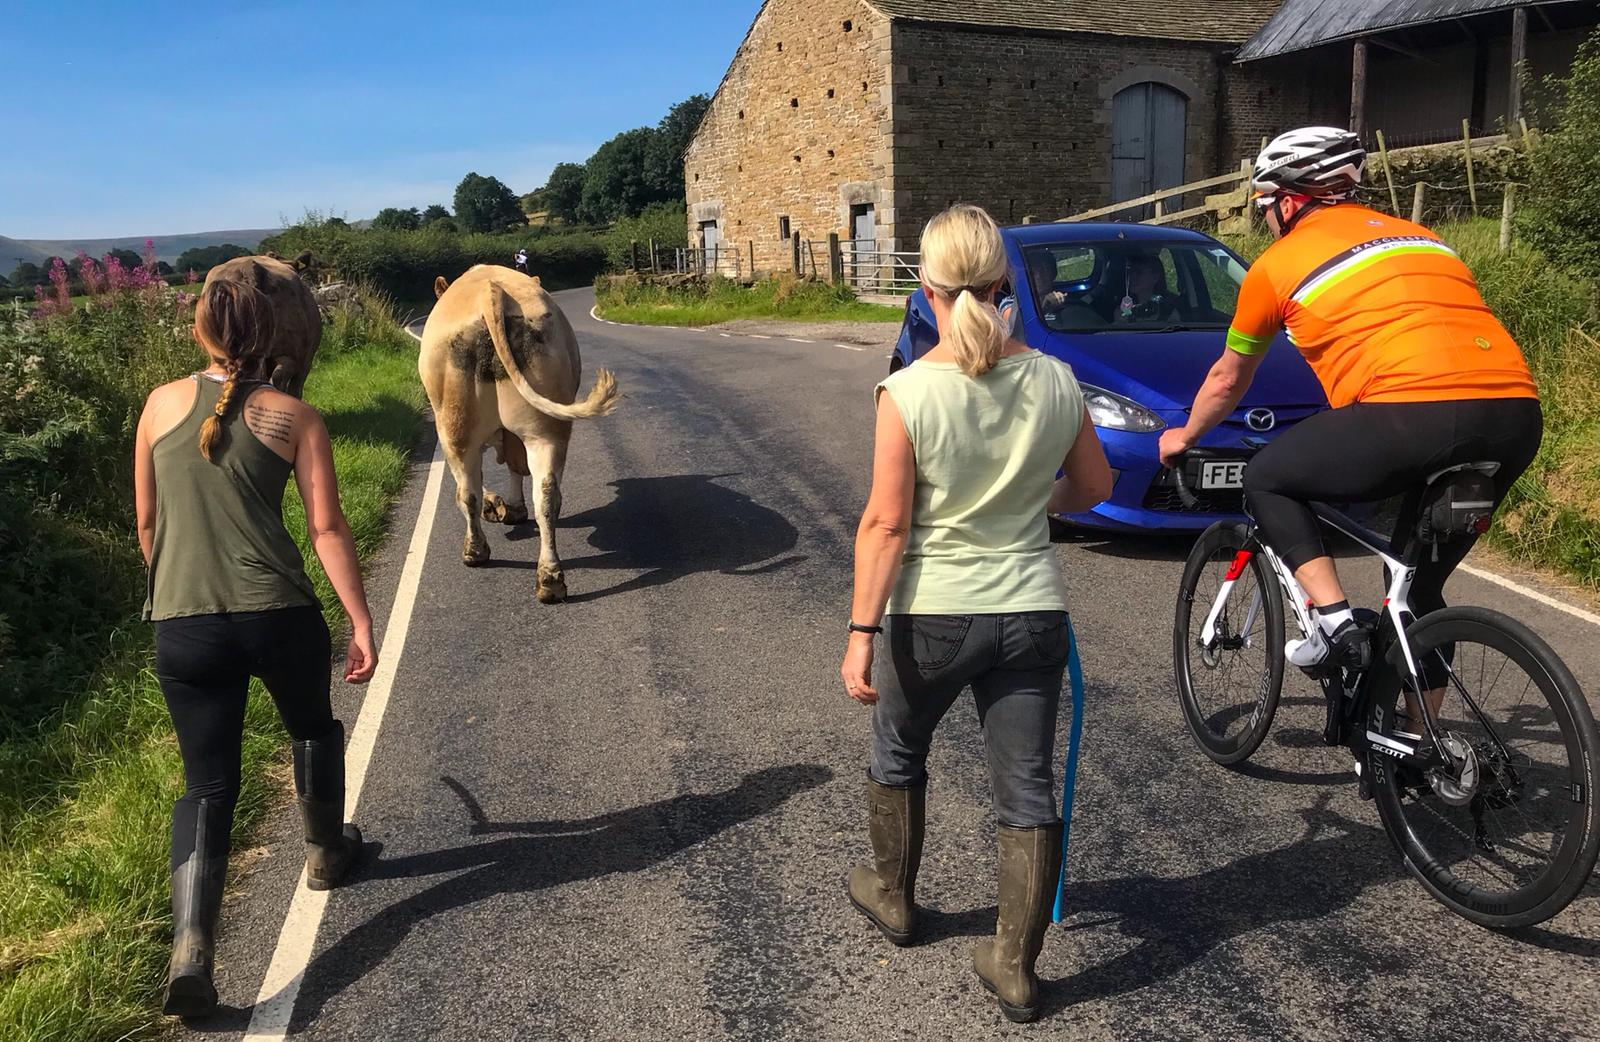 Having grown up on a farm, Simon was the first to run with the bulls between Hope and Edale, which had thankfully slowed our Bennet-led cafe sprint.